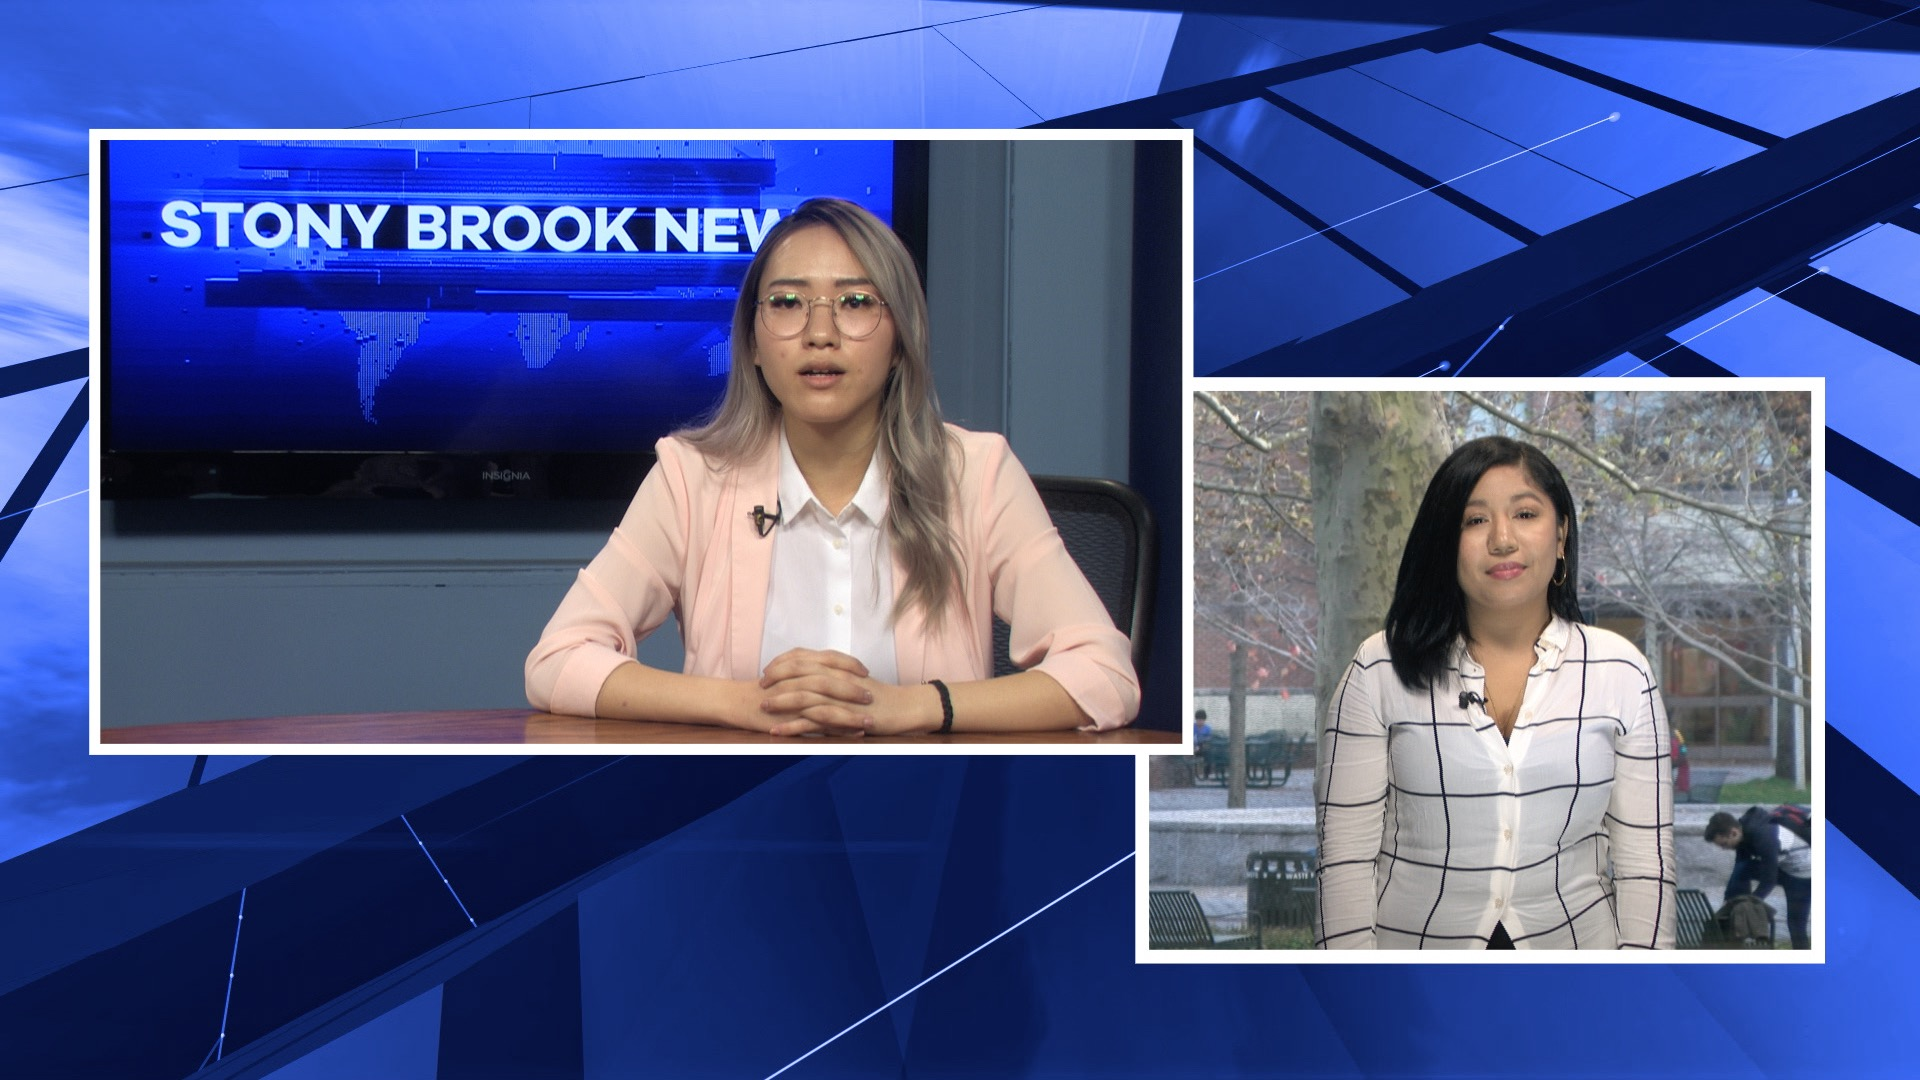 Stony Brook Newsbreak – November 11, 2019